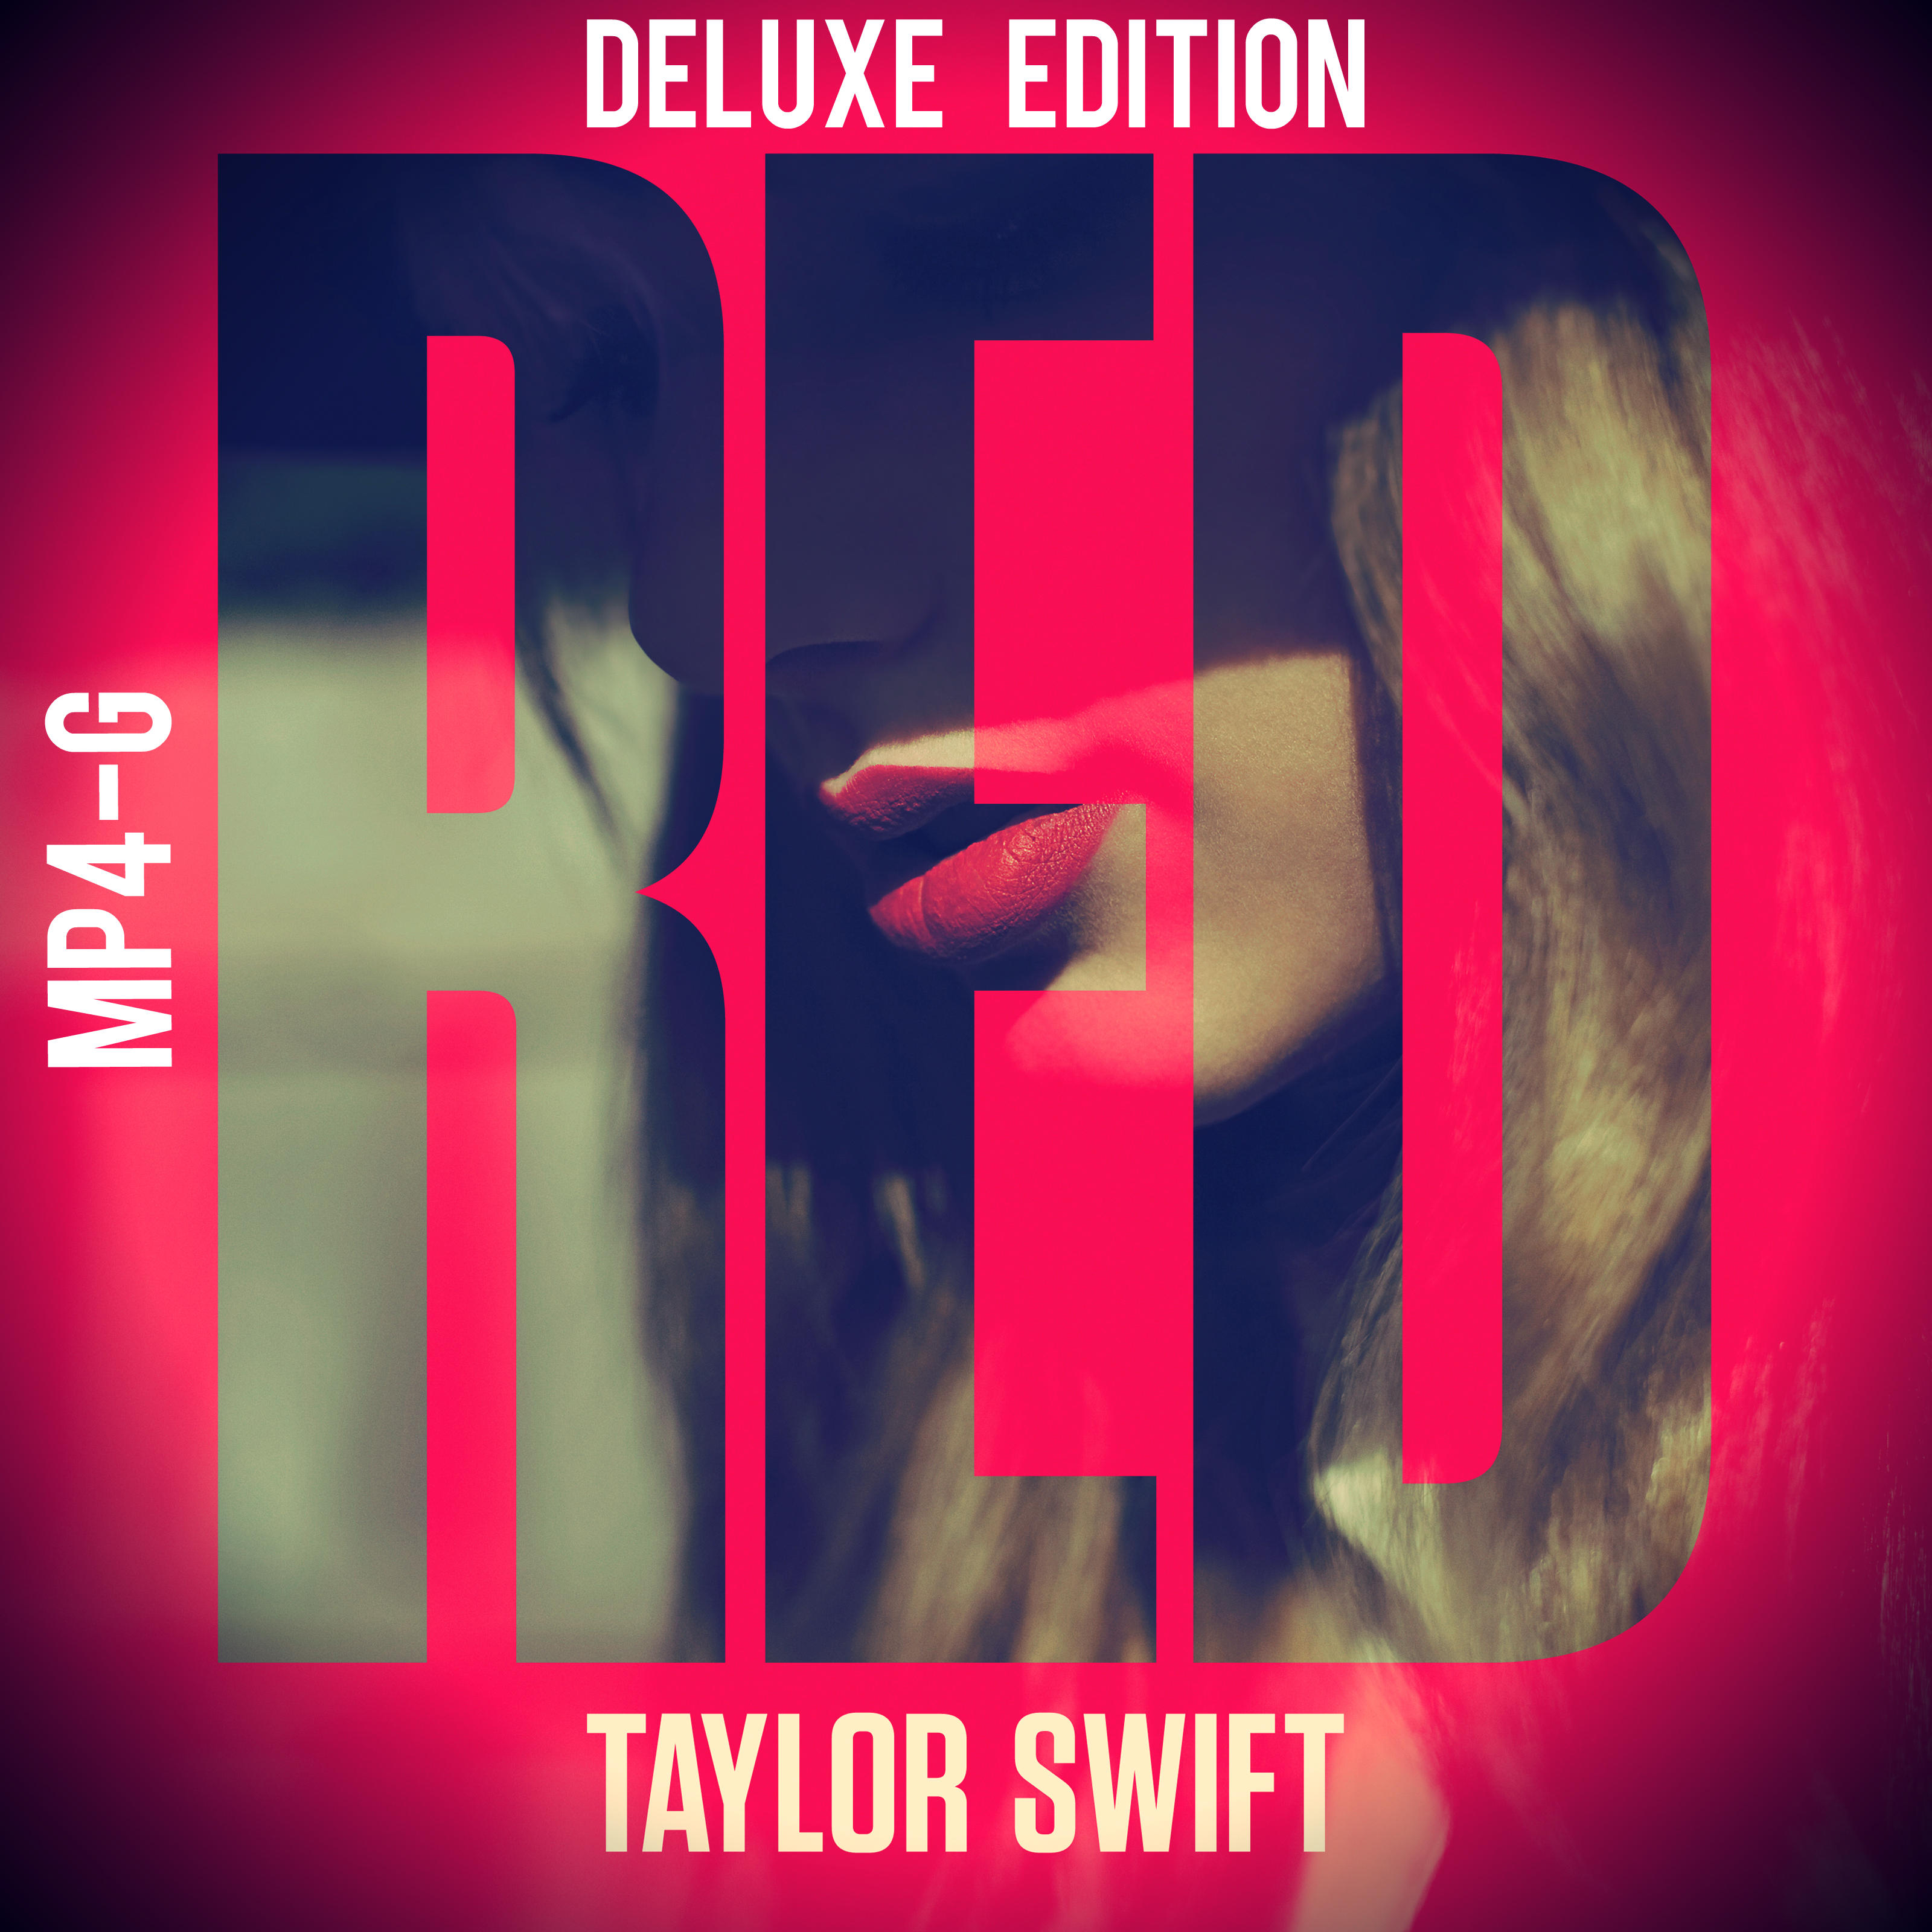 red album by taylor swift chords Nothing's gonna stop us now chords, tabs, tablatures, lyrics artists:  red  chords- taylor swift song: red singer: taylor swift album: red release date: .